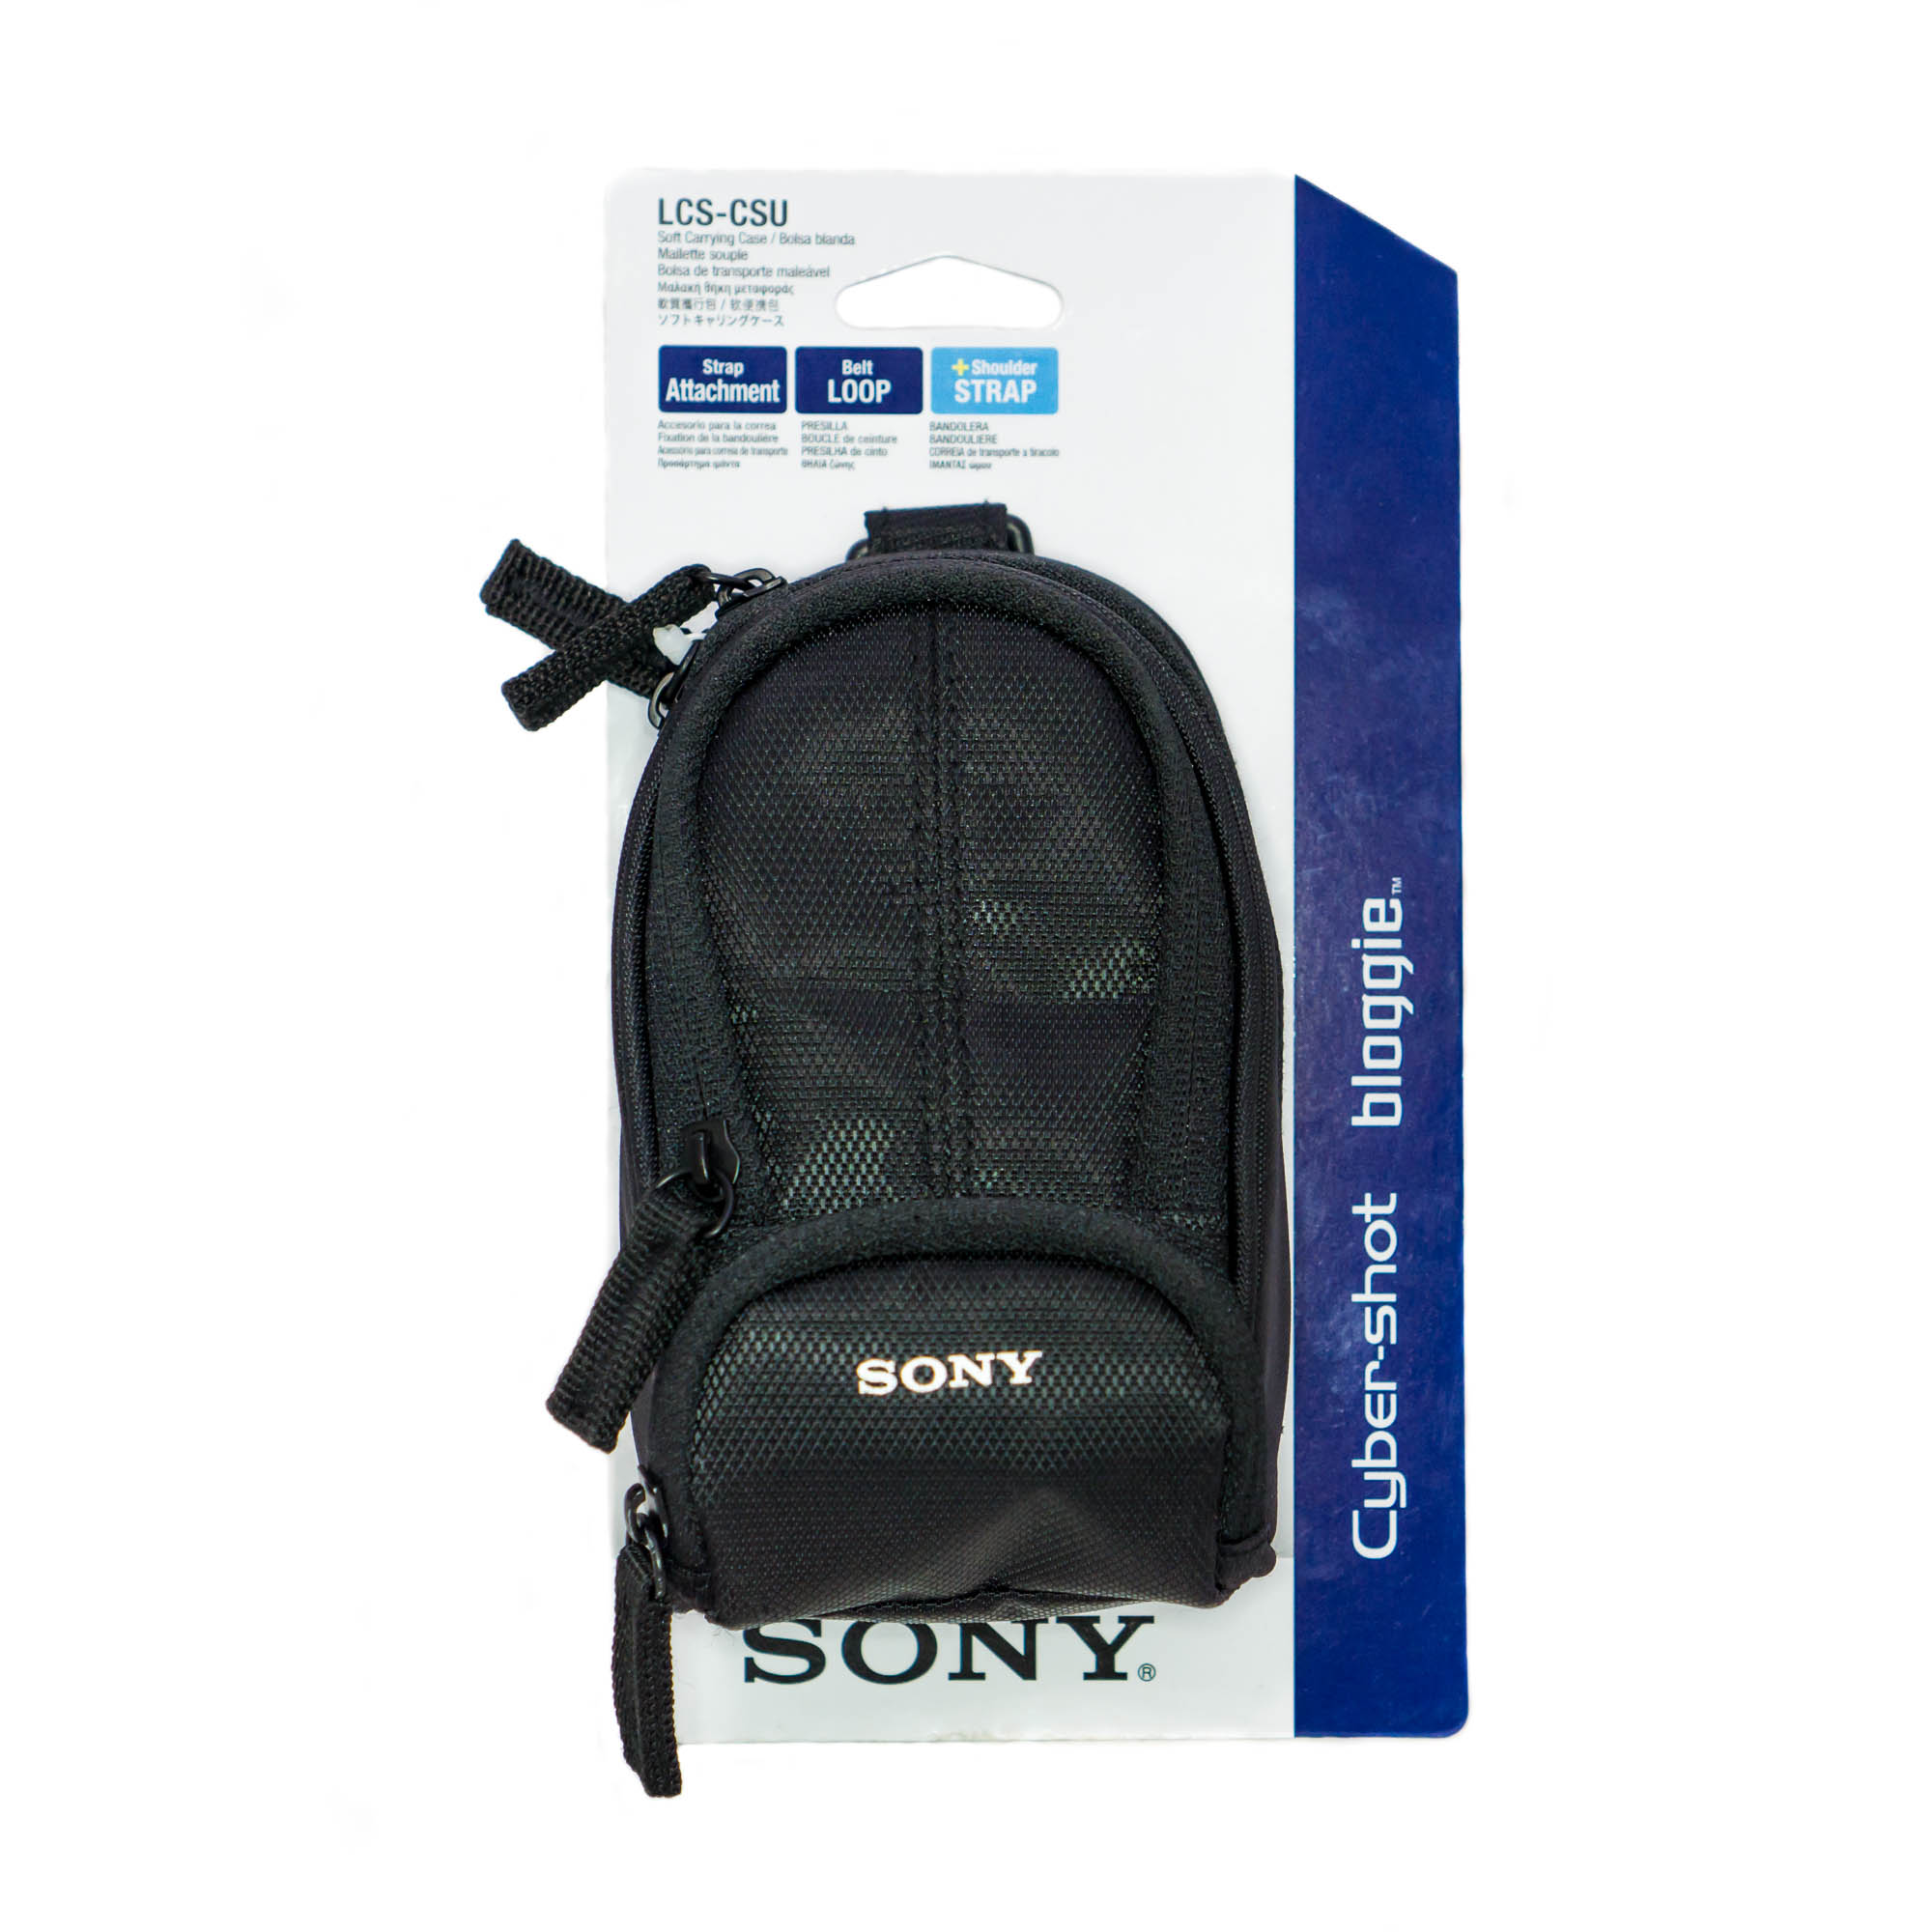 d8b792f0a The Sony LCSCSU is a pretty nice camera case, but it is better suited for